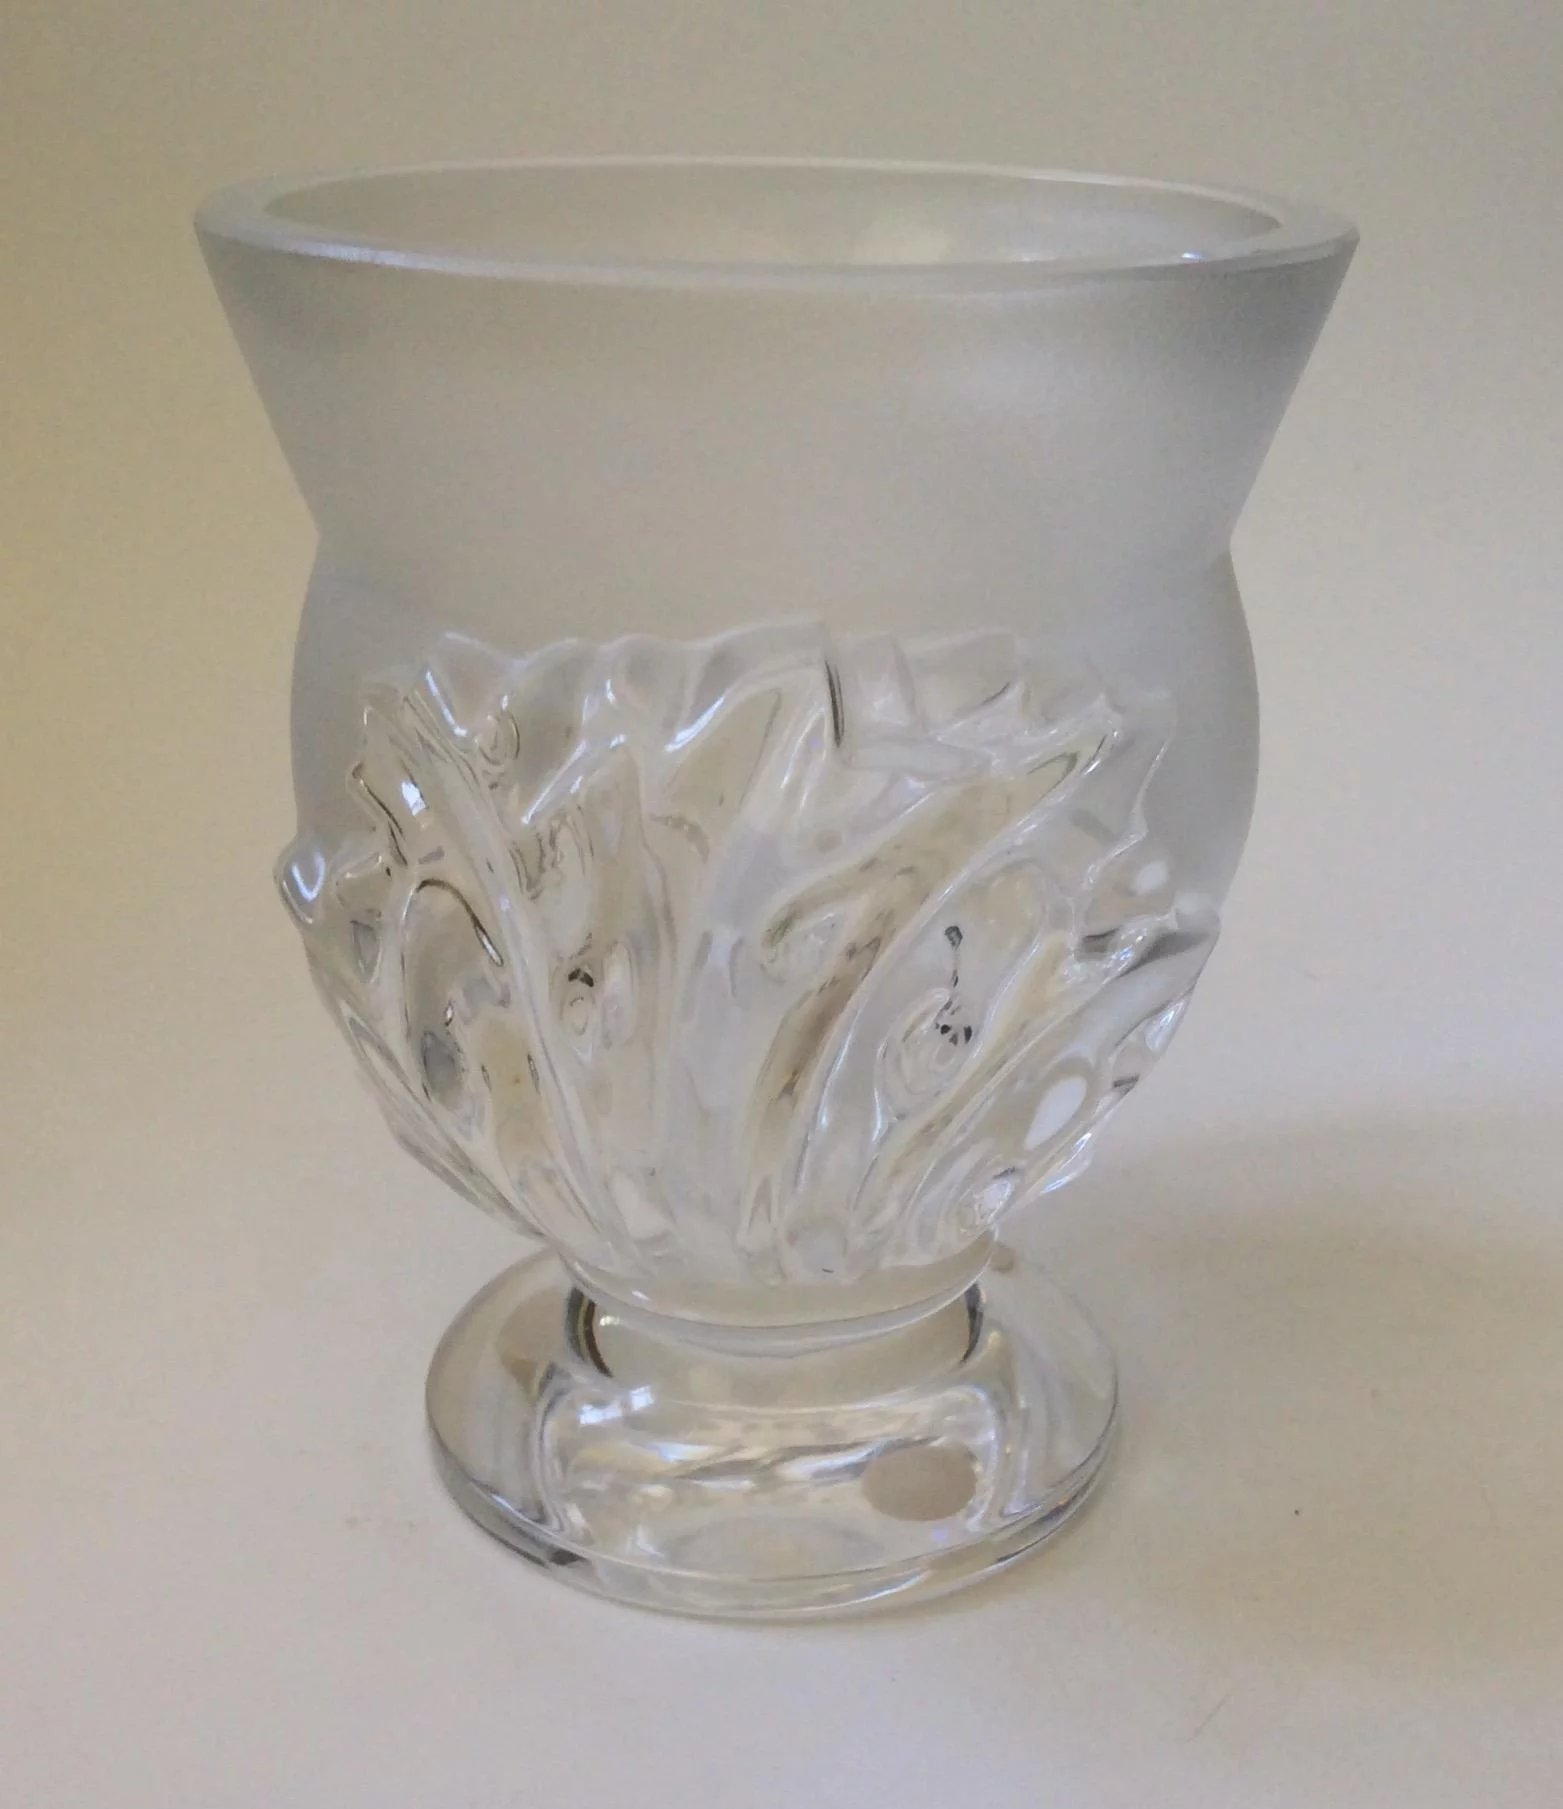 Lalique st cloud crystal vase mint condition archetypes ruby lane lalique st cloud crystal vase mint condition click to expand reviewsmspy